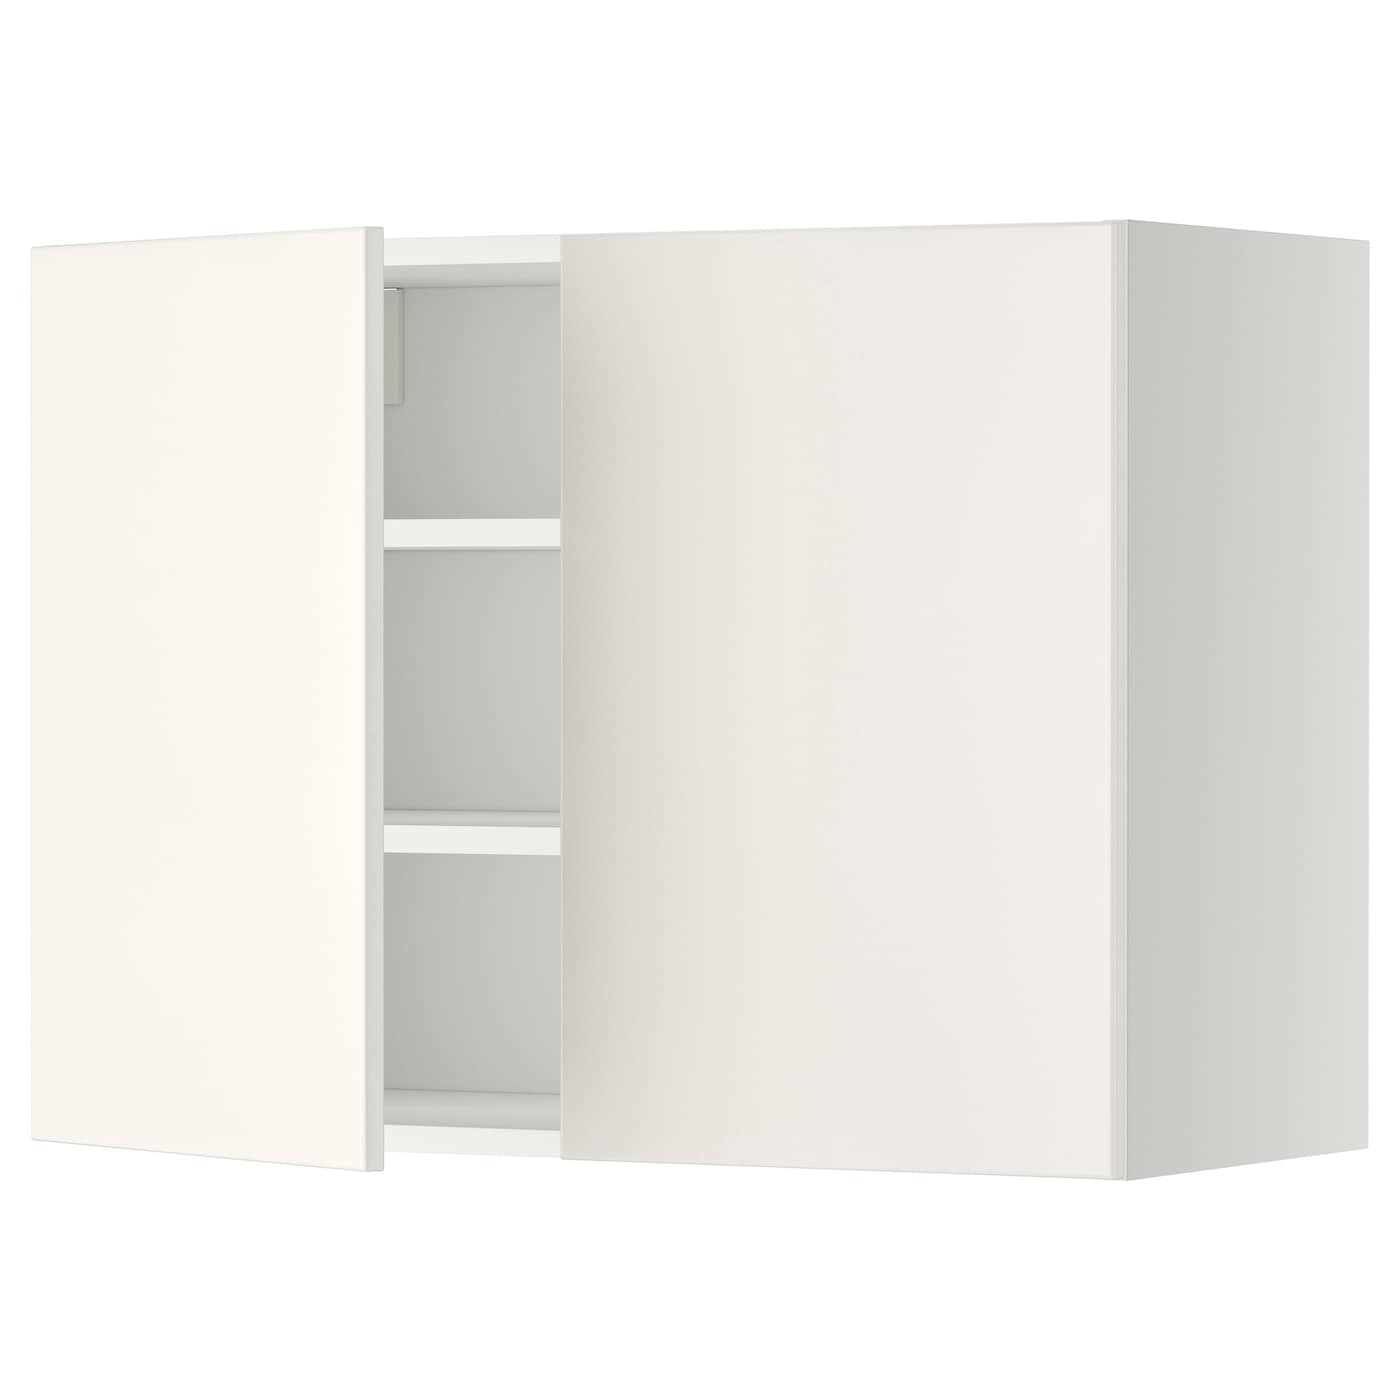 metod wall cabinet with shelves 2 doors white veddinge. Black Bedroom Furniture Sets. Home Design Ideas